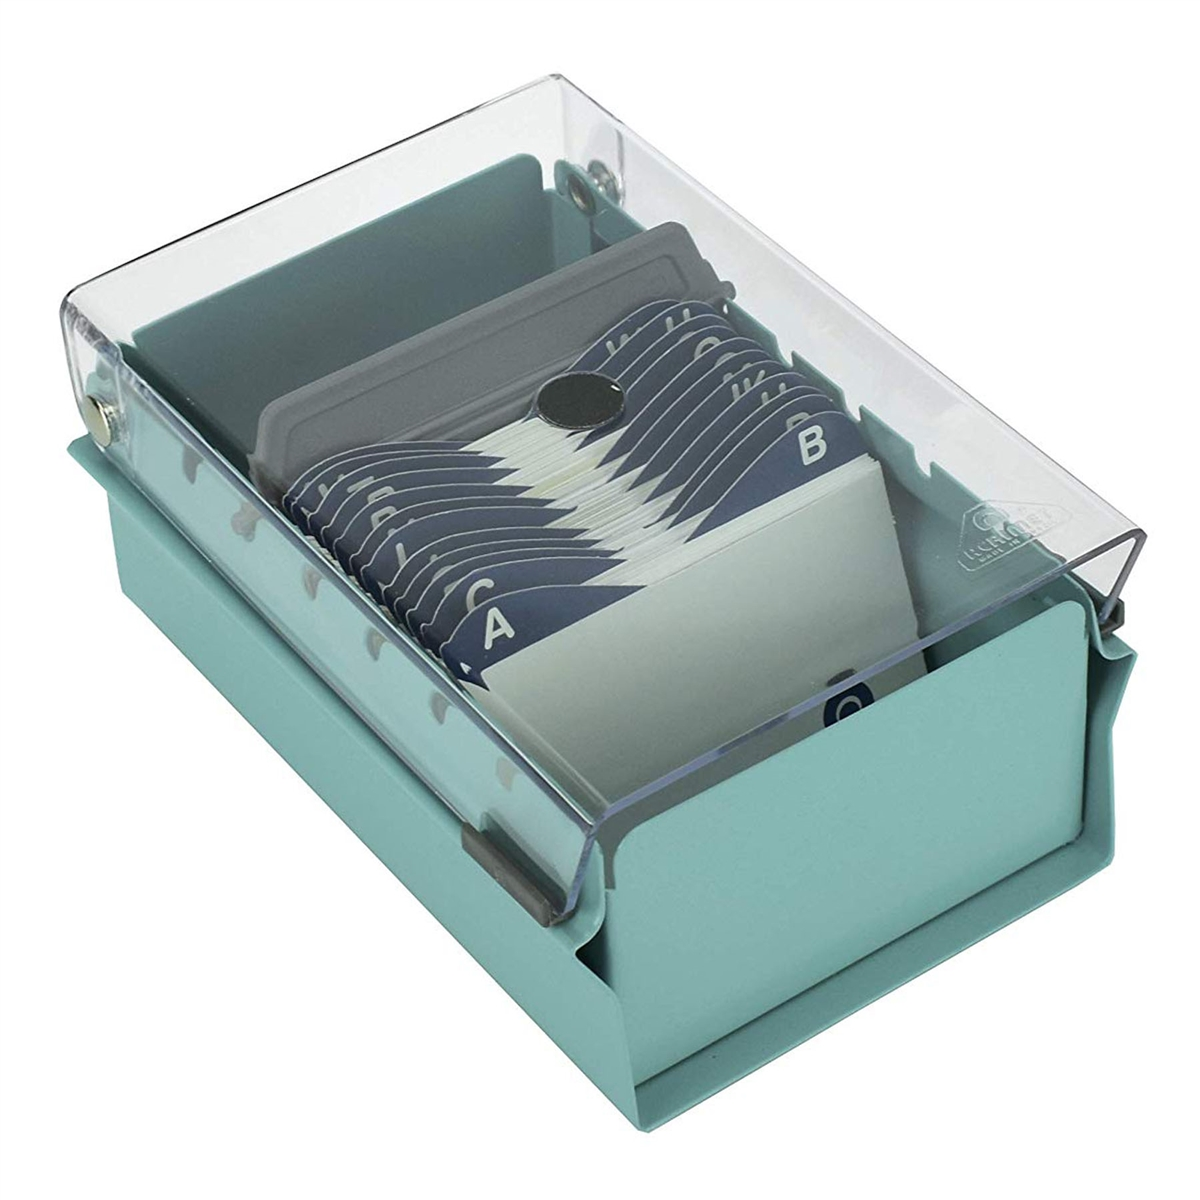 Acrimet Index Business Card File holder (Green Color with Crystal ...